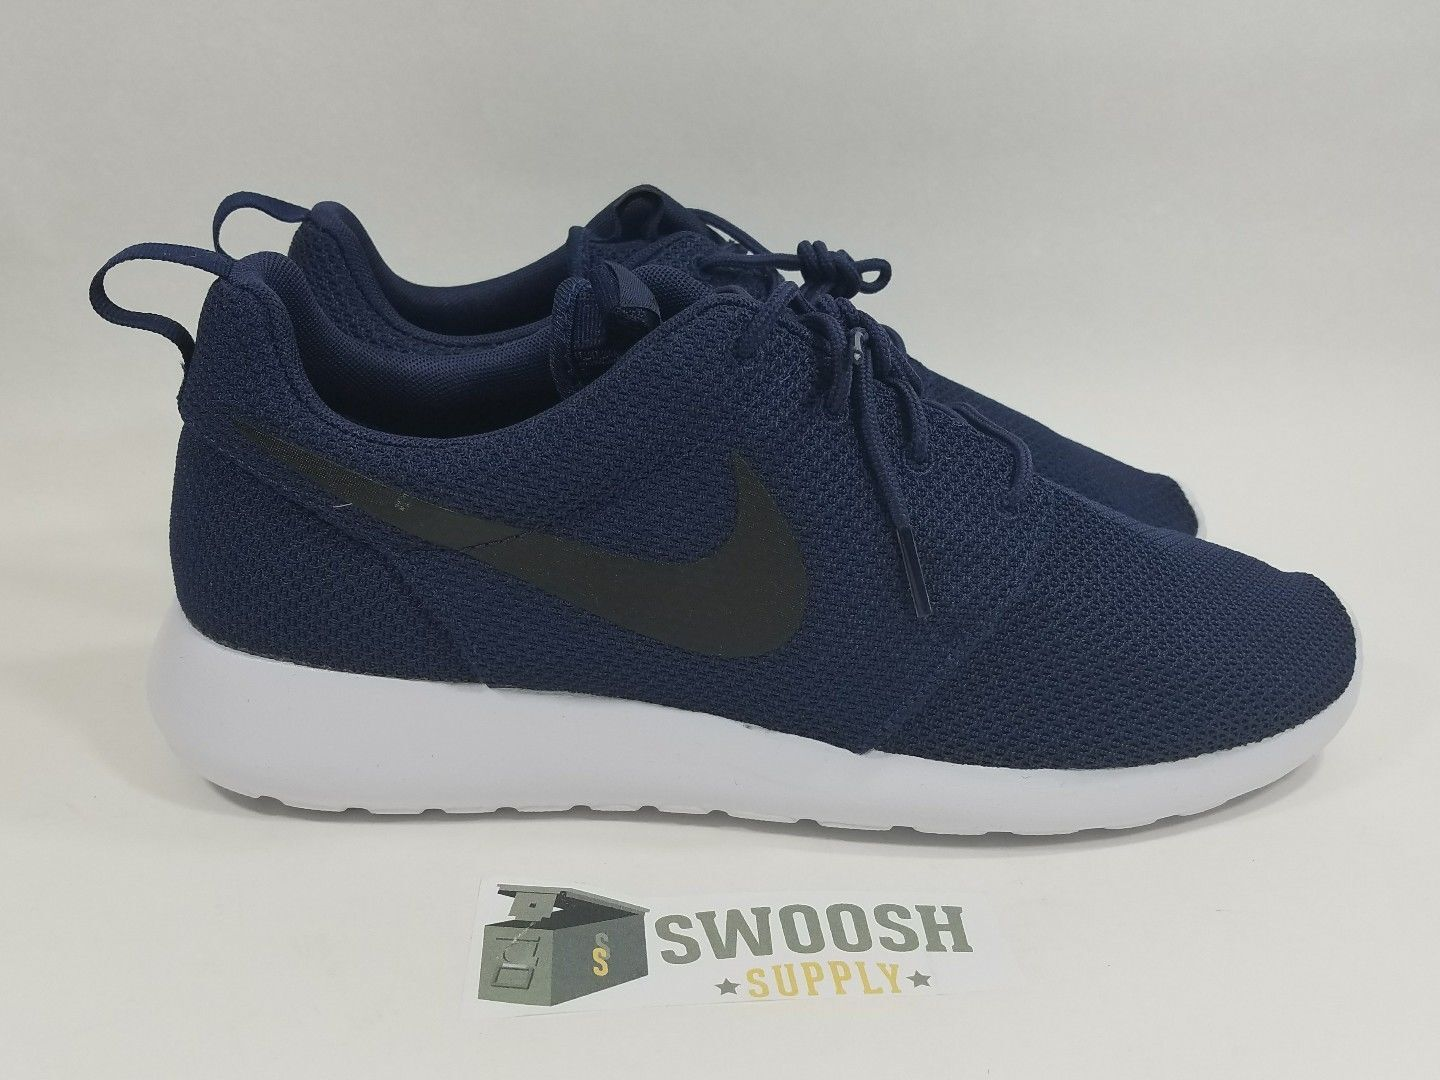 Nike Roshe Run MIDNIGHT NAVY blueE BLACK 511881-405 Size OG COLORWAY